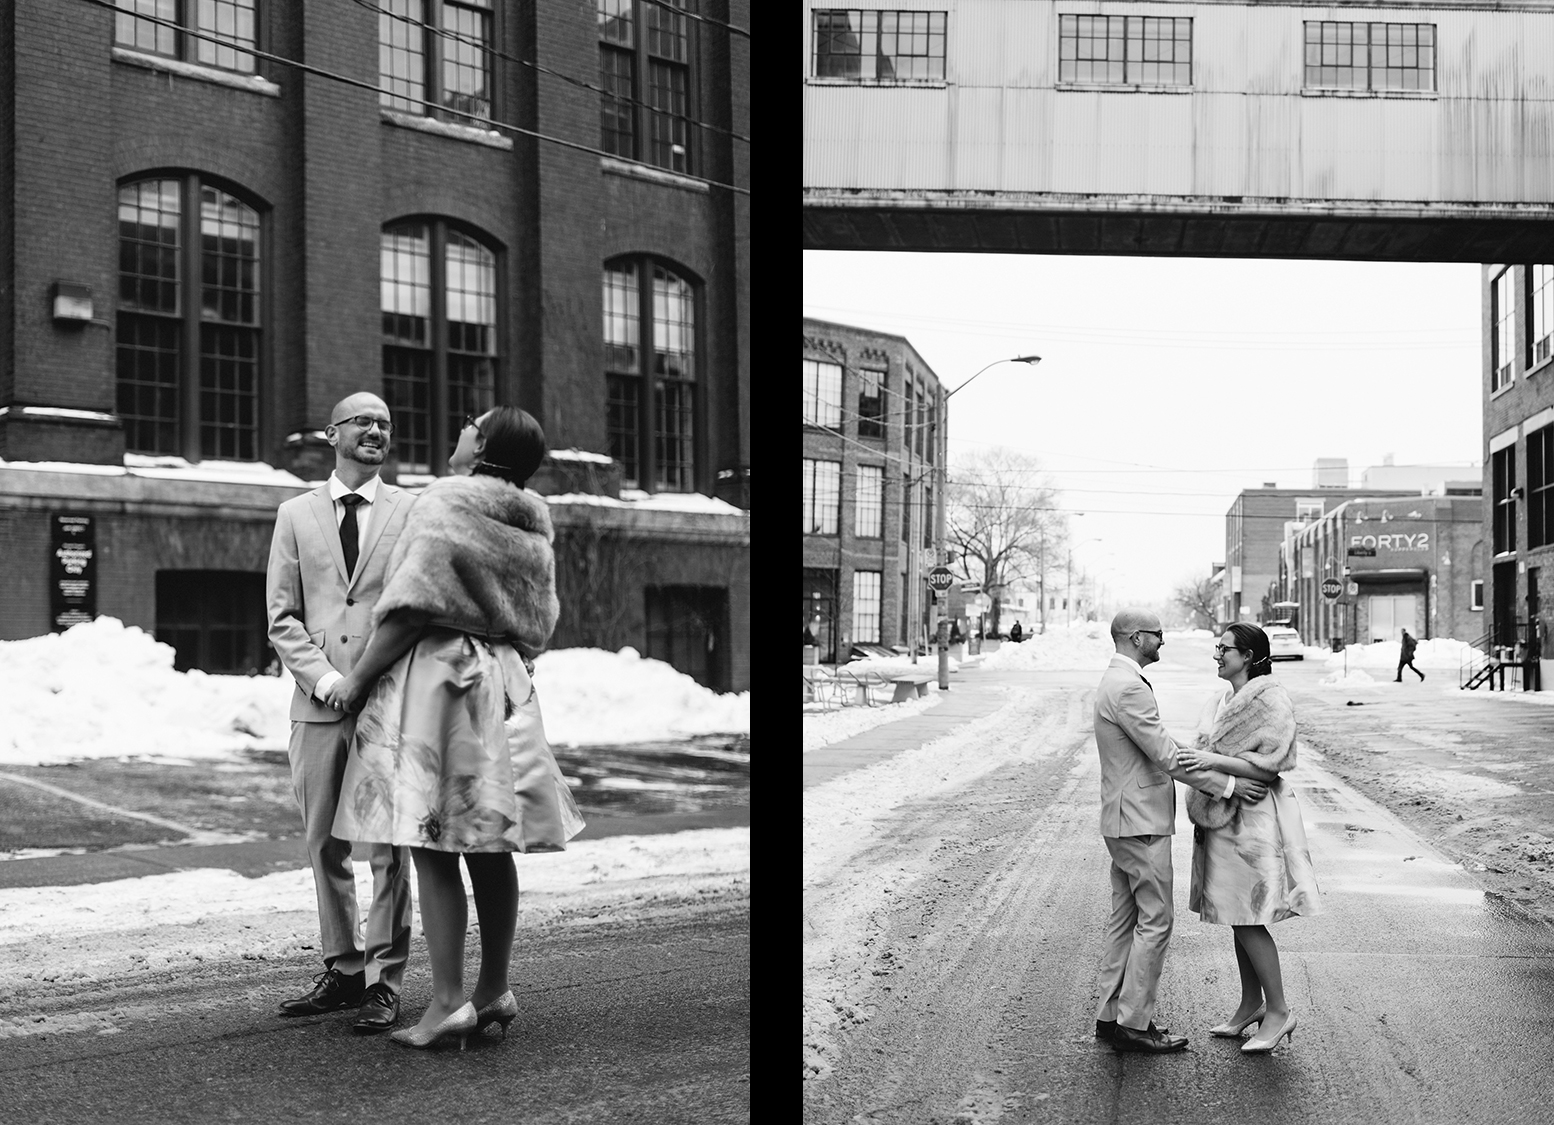 6-couples-portraits-liberty-village-real-wedding-toronto-wedding-photographer-alternative-unique-couple-analog-film-candid-documentary-moments-old-toronto-13.jpg